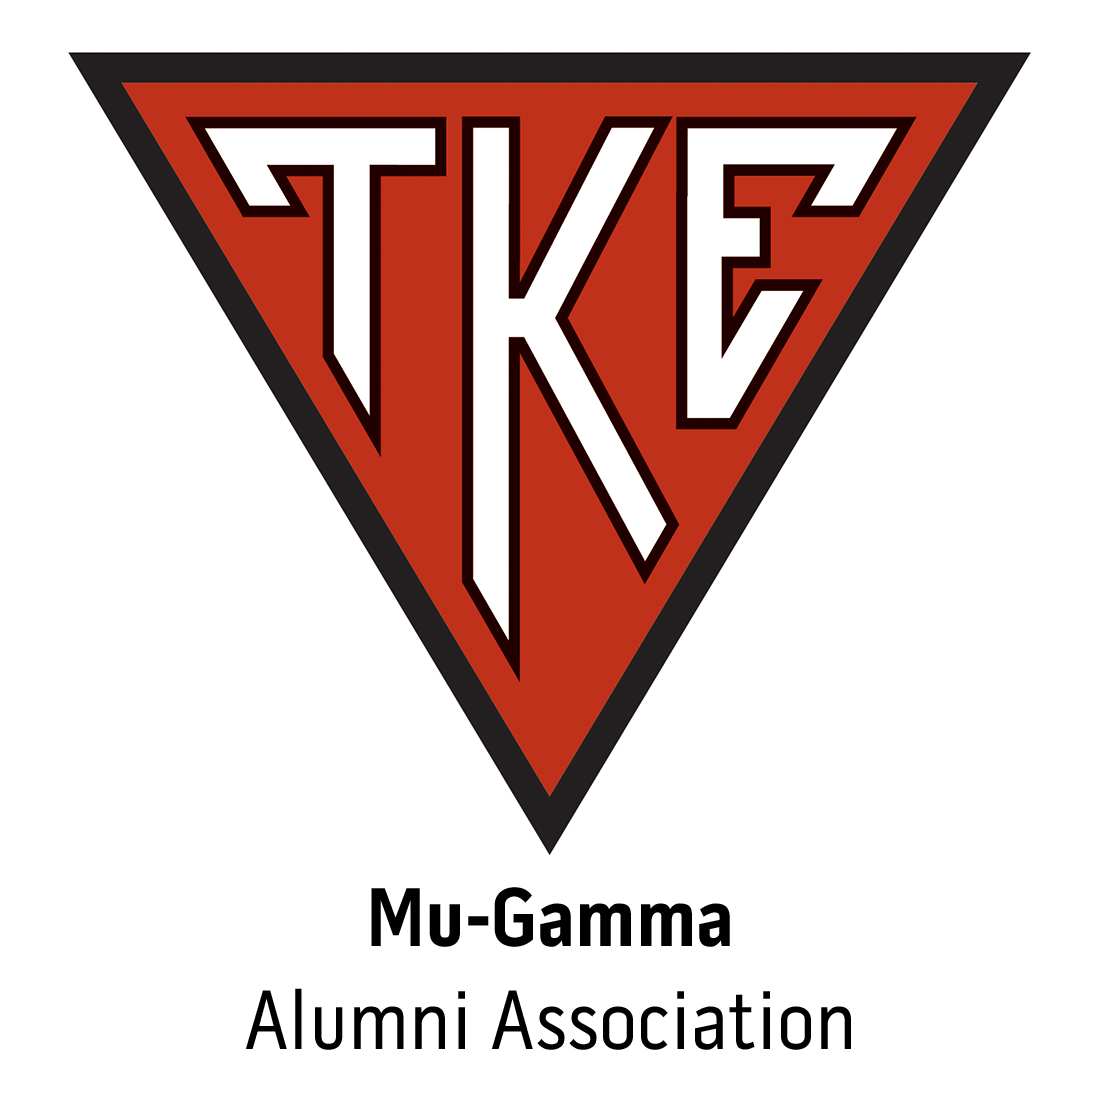 Mu-Gamma Alumni Association at Midwestern State University